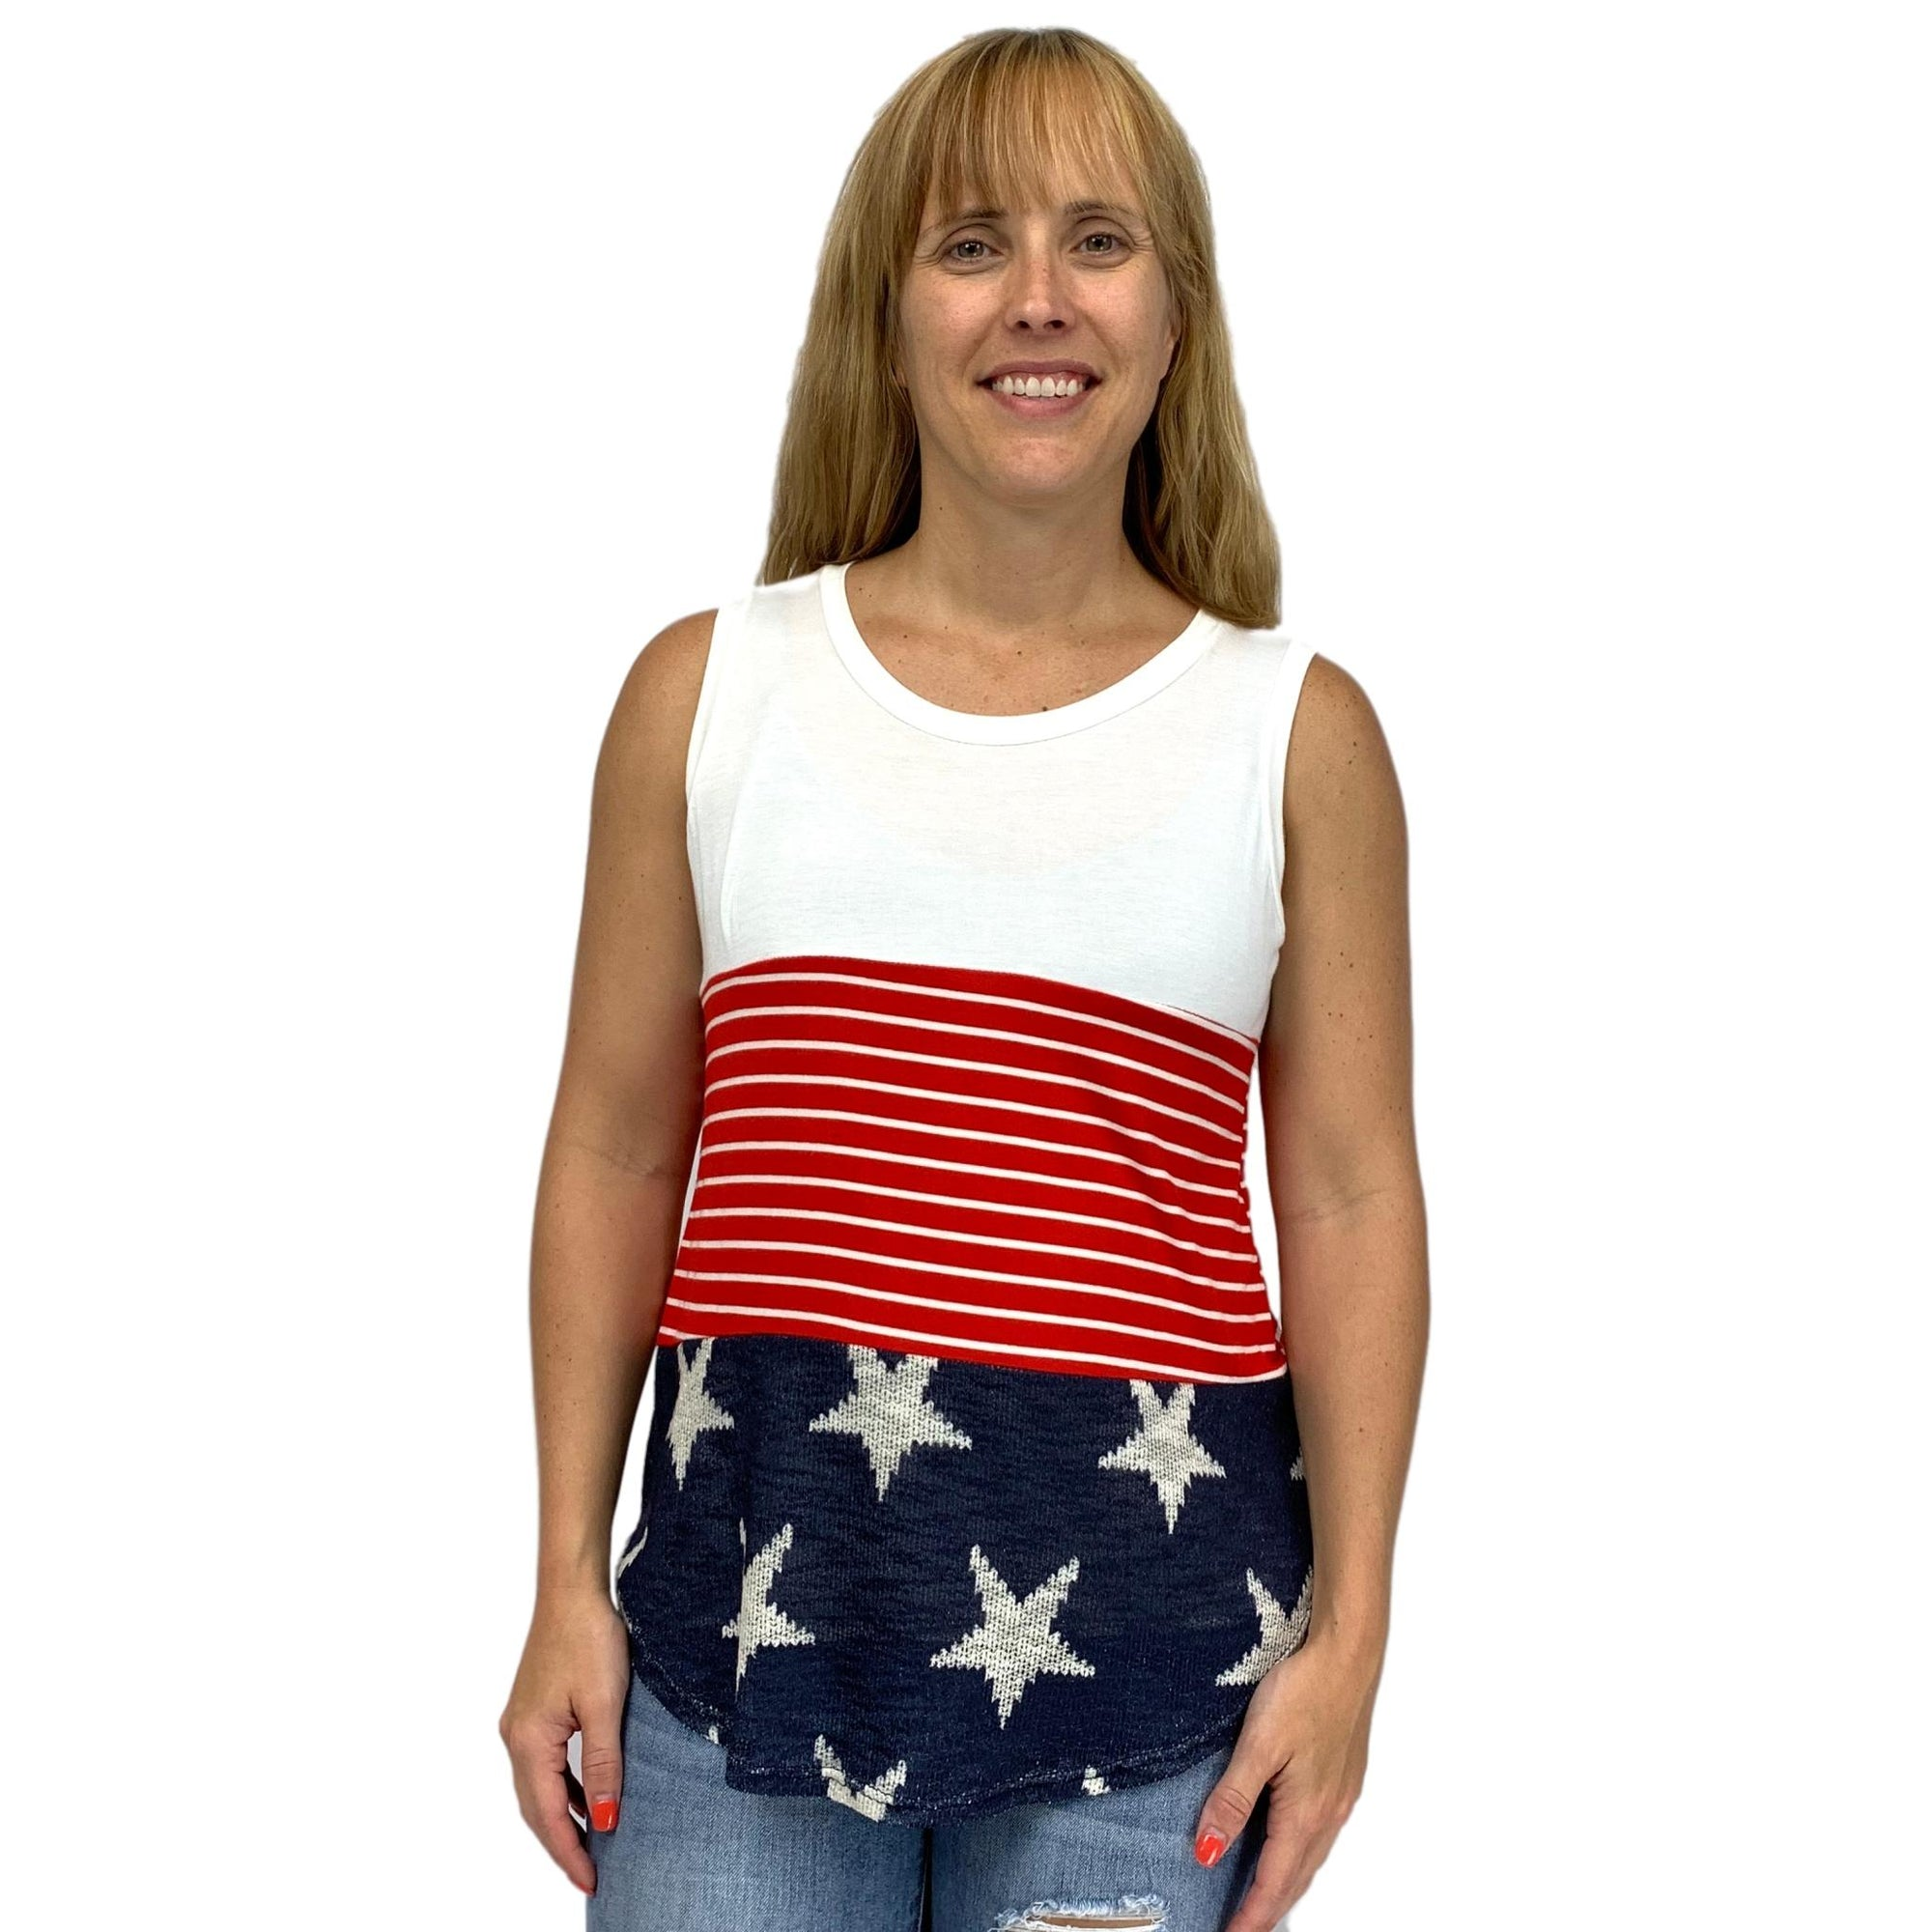 4TH of July Color Block Tank Top